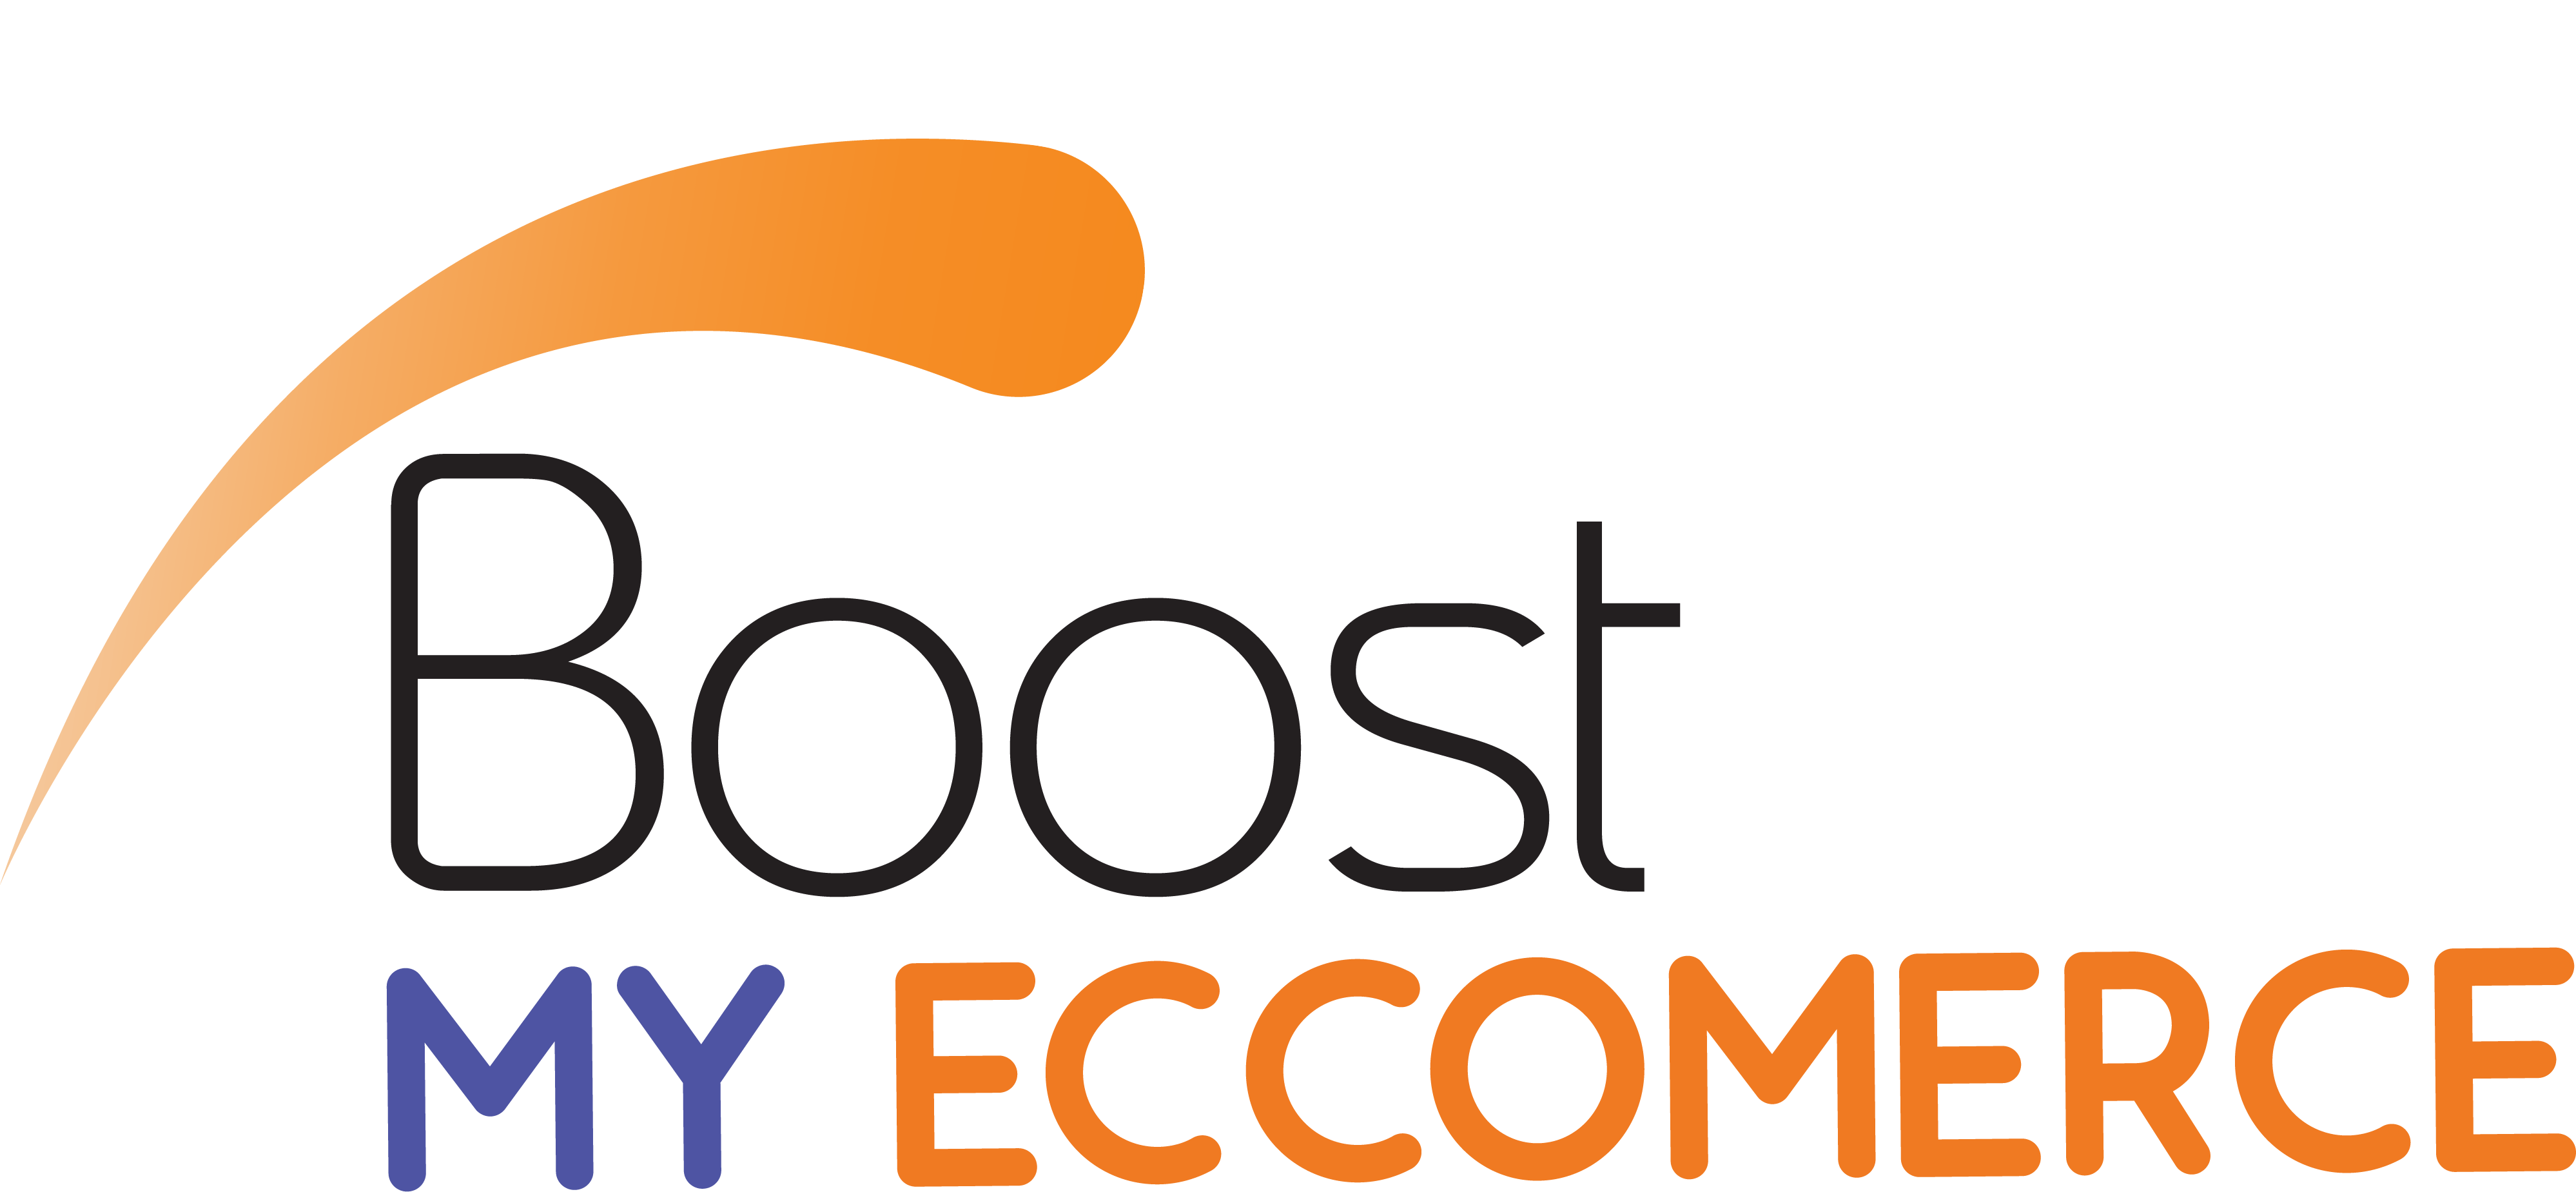 boostmyecommerce.com